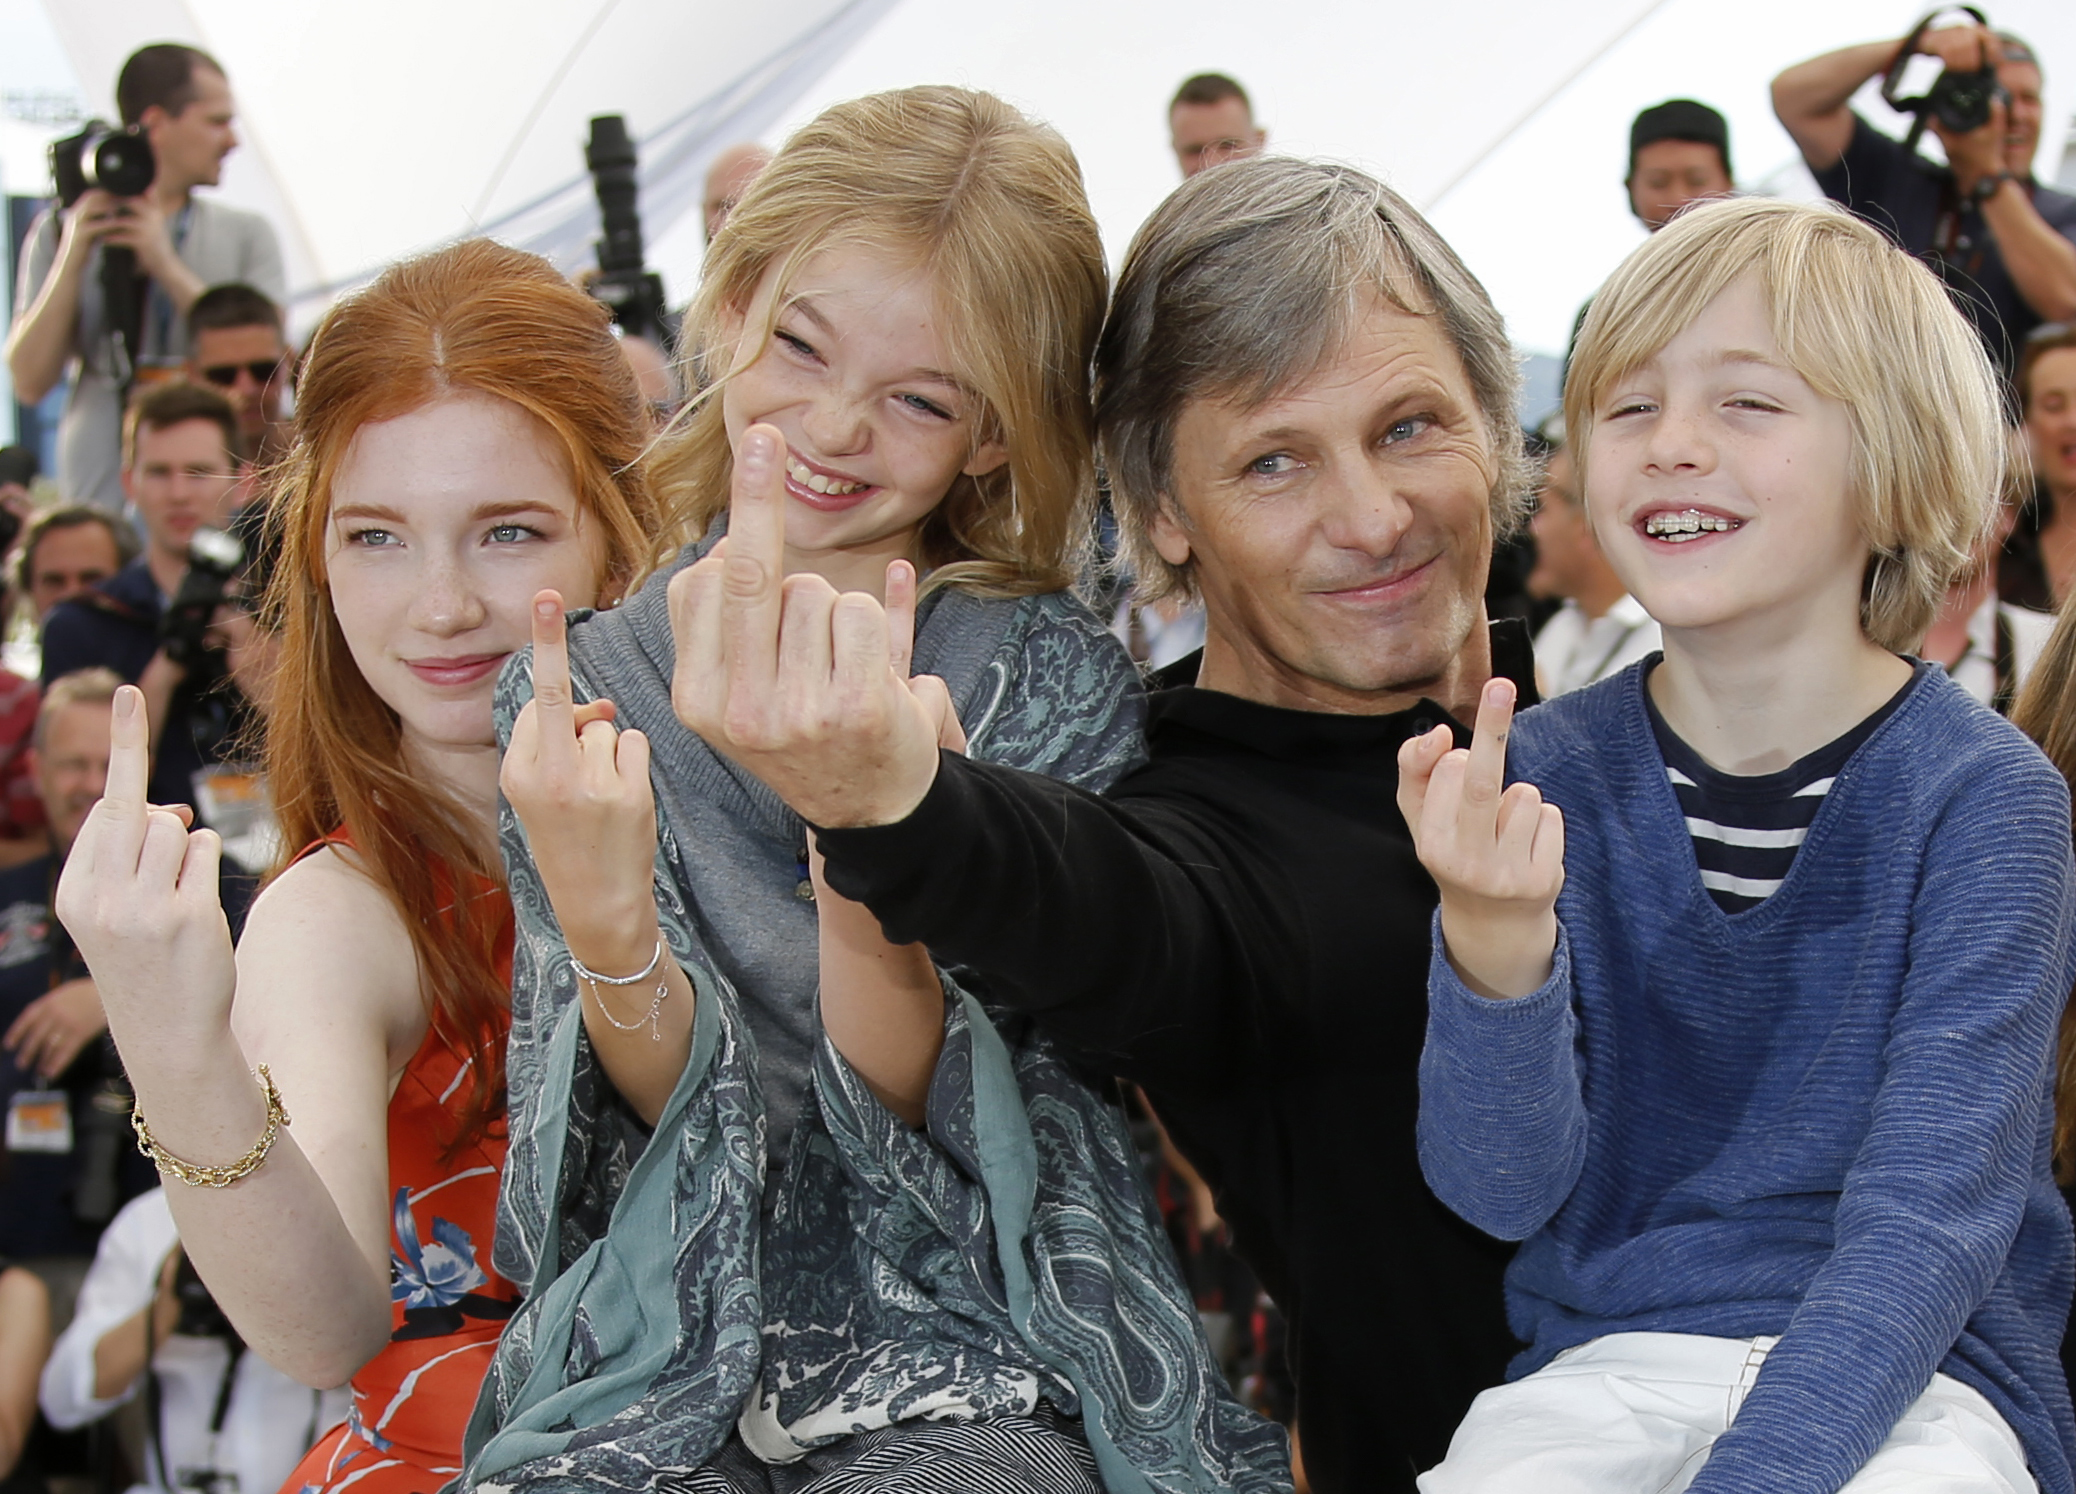 """Giving the finger -- Viggo Mortensen, Charlie Shotwell, Shree Crooks and Annalise Basso gesture during a photocall for the film """"Captain Fantastic"""" in the 69th Cannes Film Festival in Cannes"""